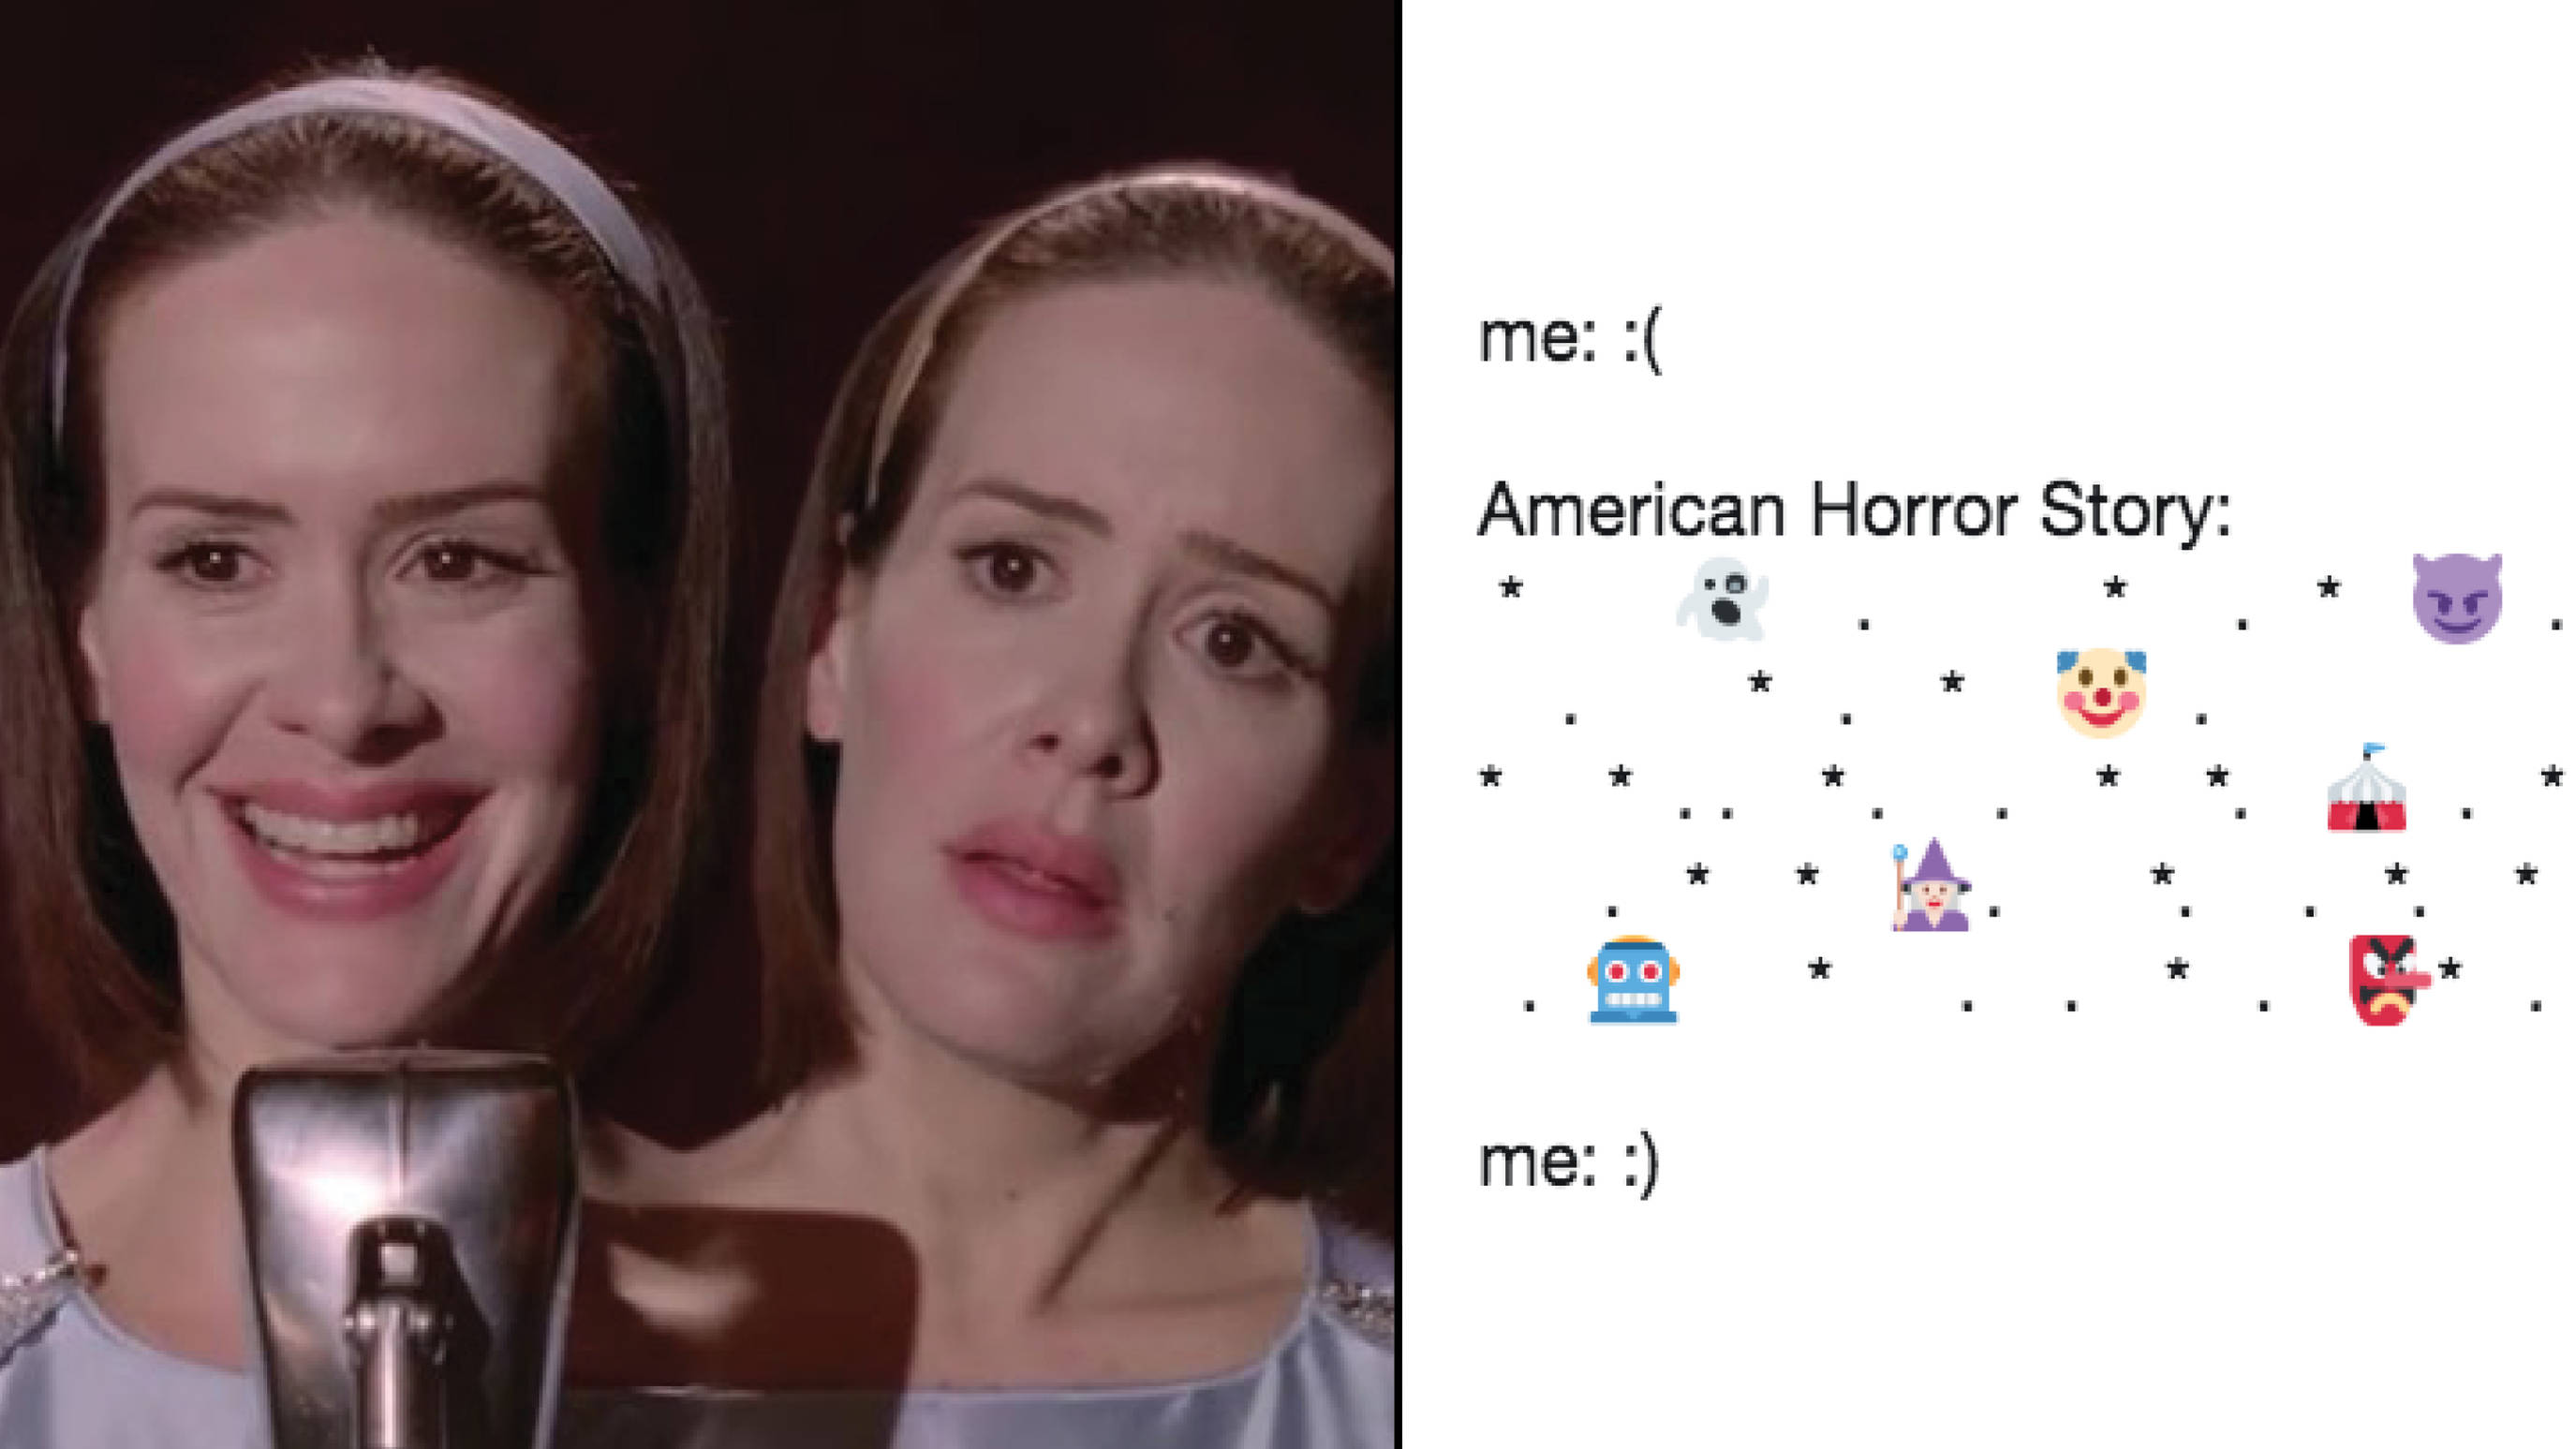 The Sad Happy Meme Will Perfectly Sum Up Your Mood Swings Popbuzz